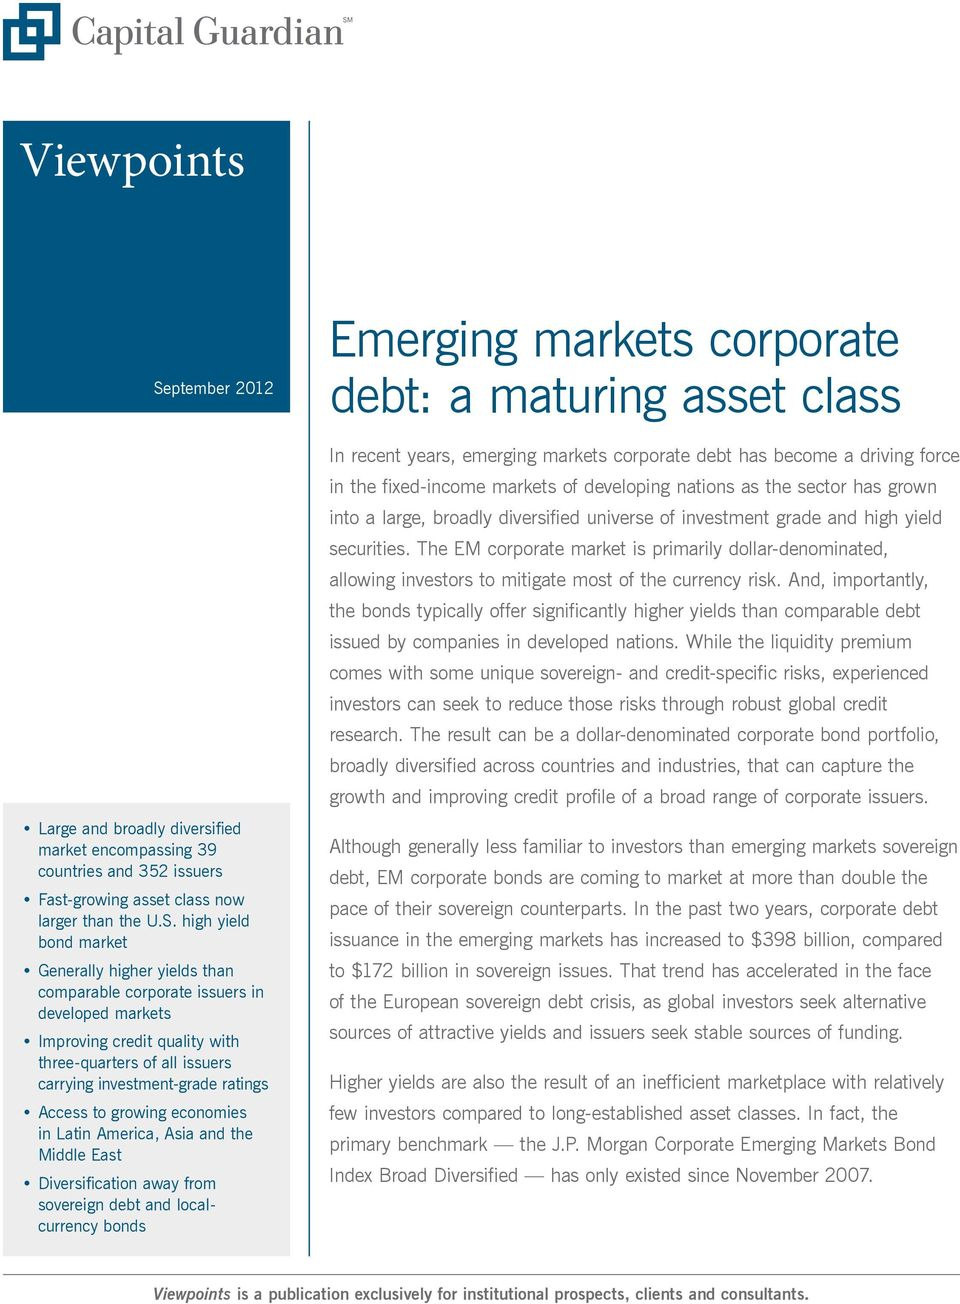 high yield bond market Generally higher yields than comparable corporate issuers in developed markets Improving credit quality with three-quarters of all issuers carrying investment-grade ratings